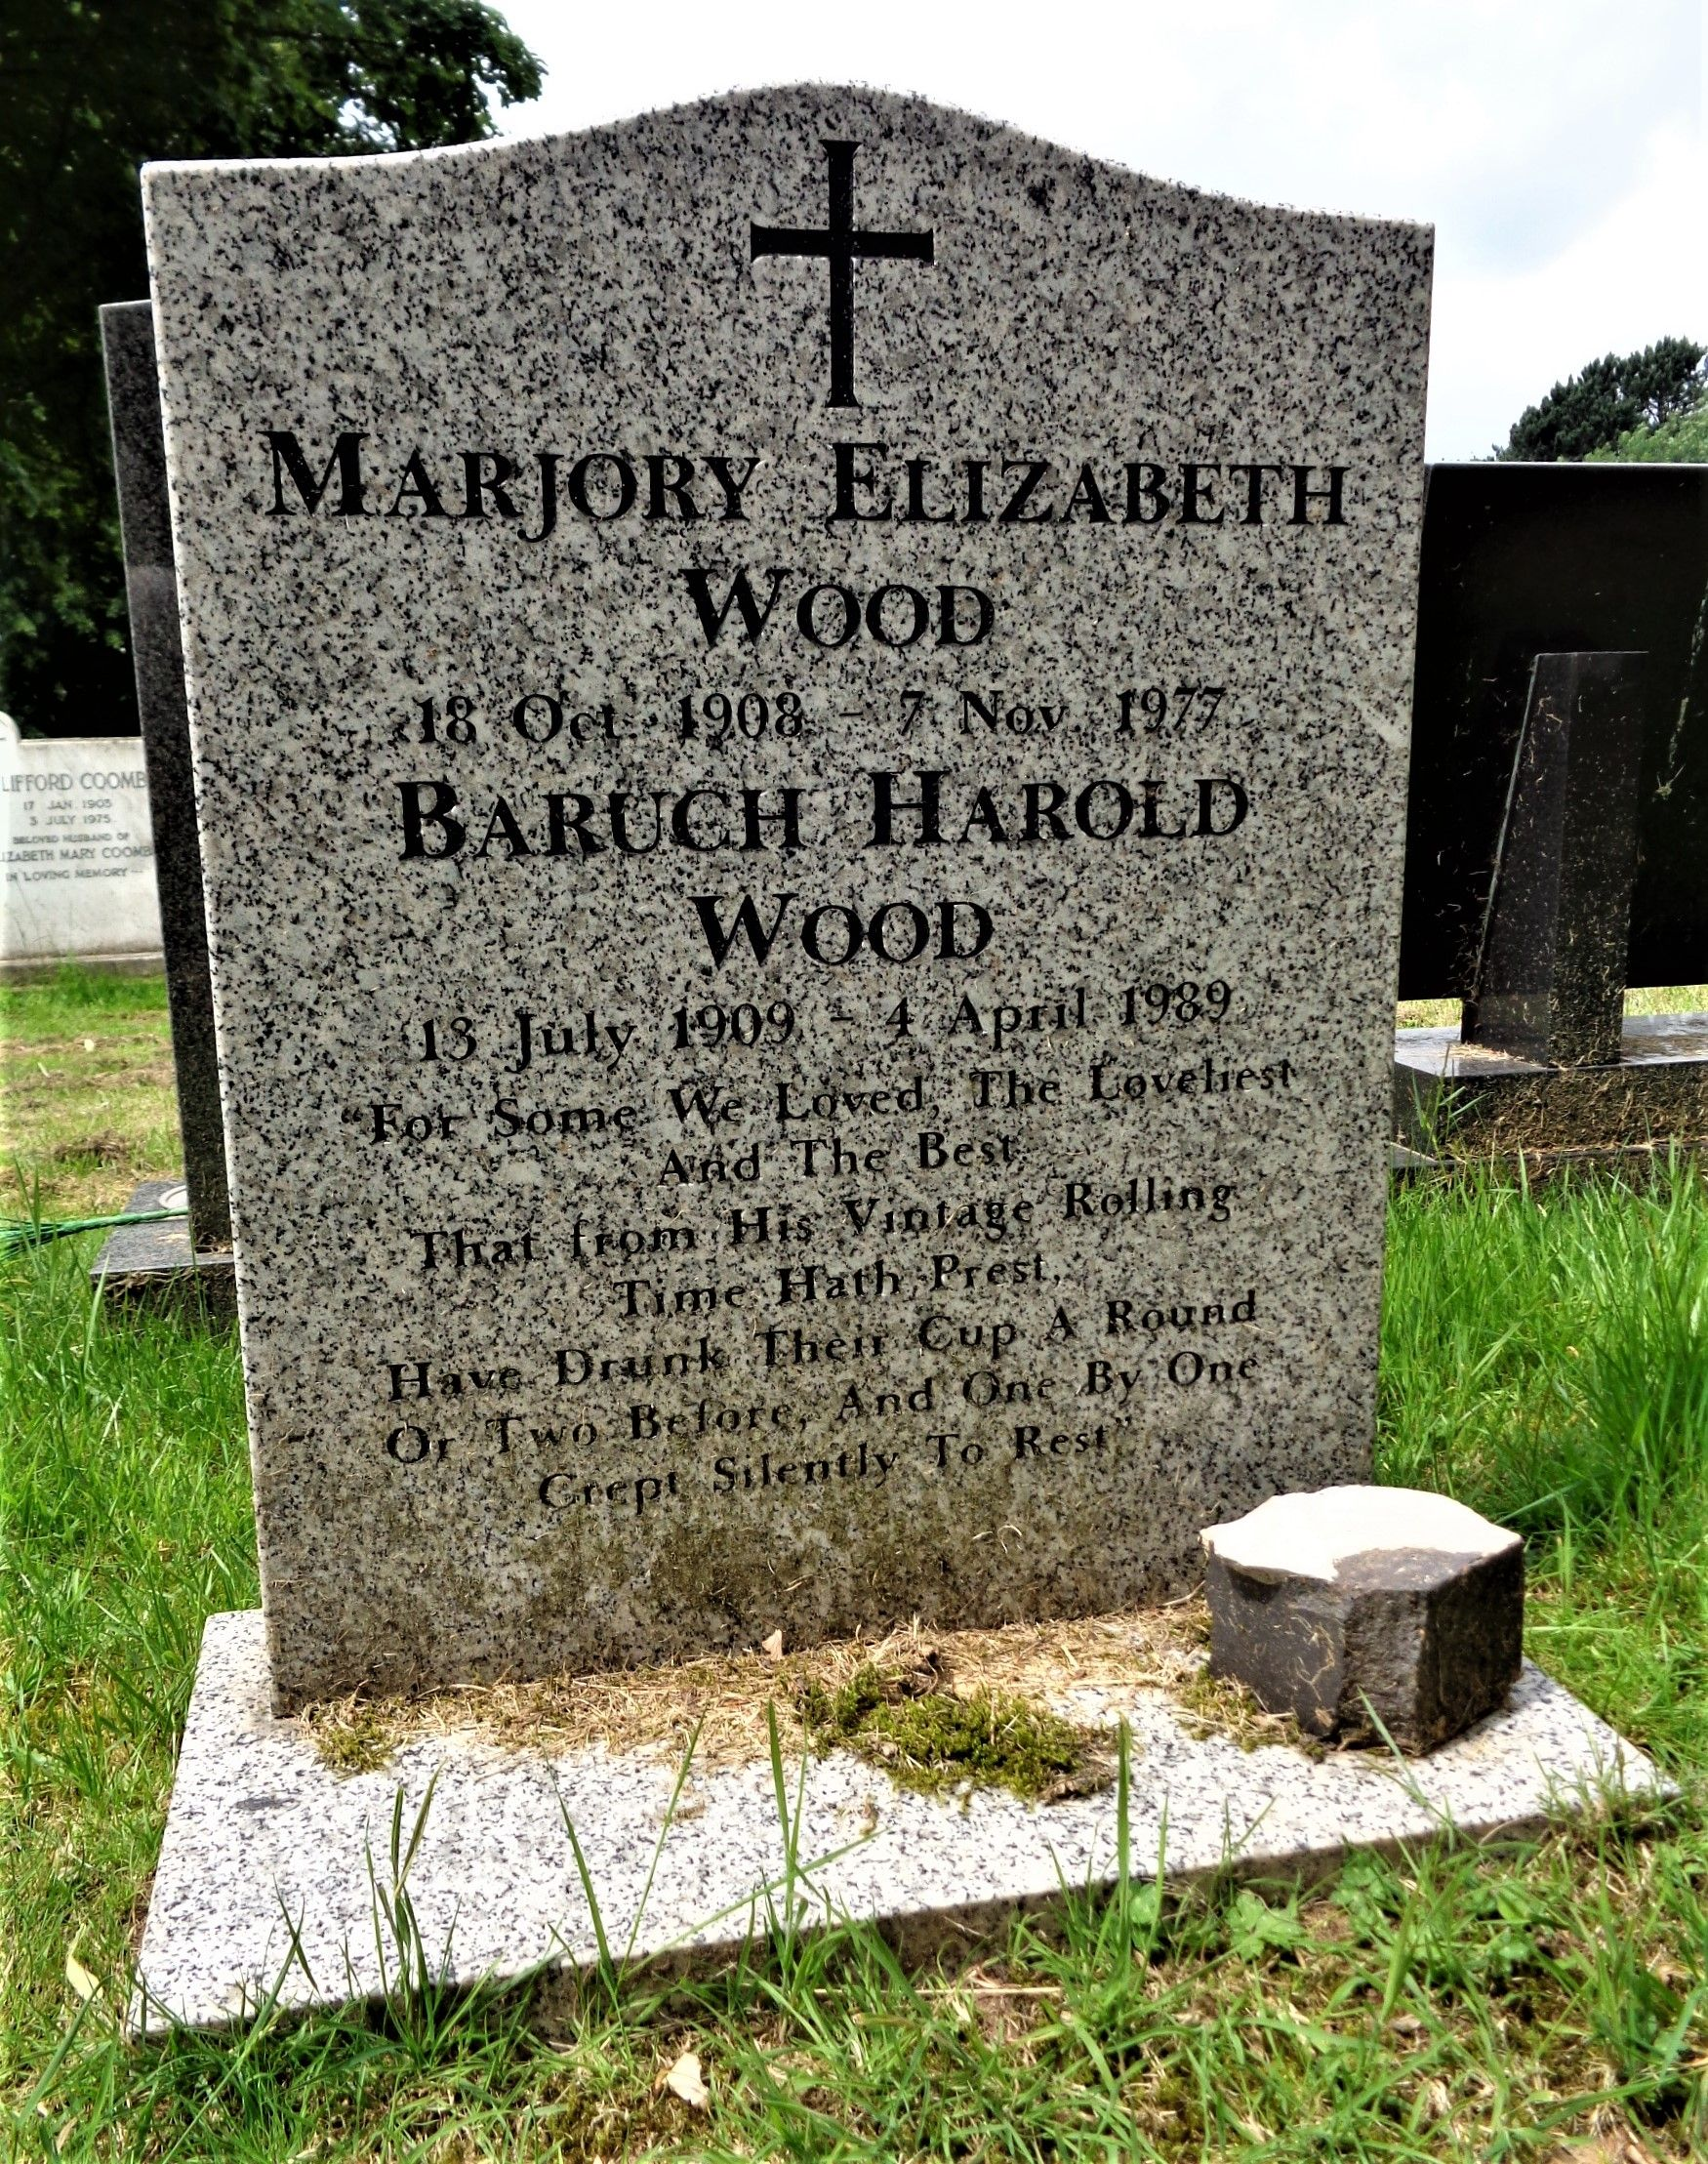 Gravestone of BH & ME Wood, photo by Glen Livet